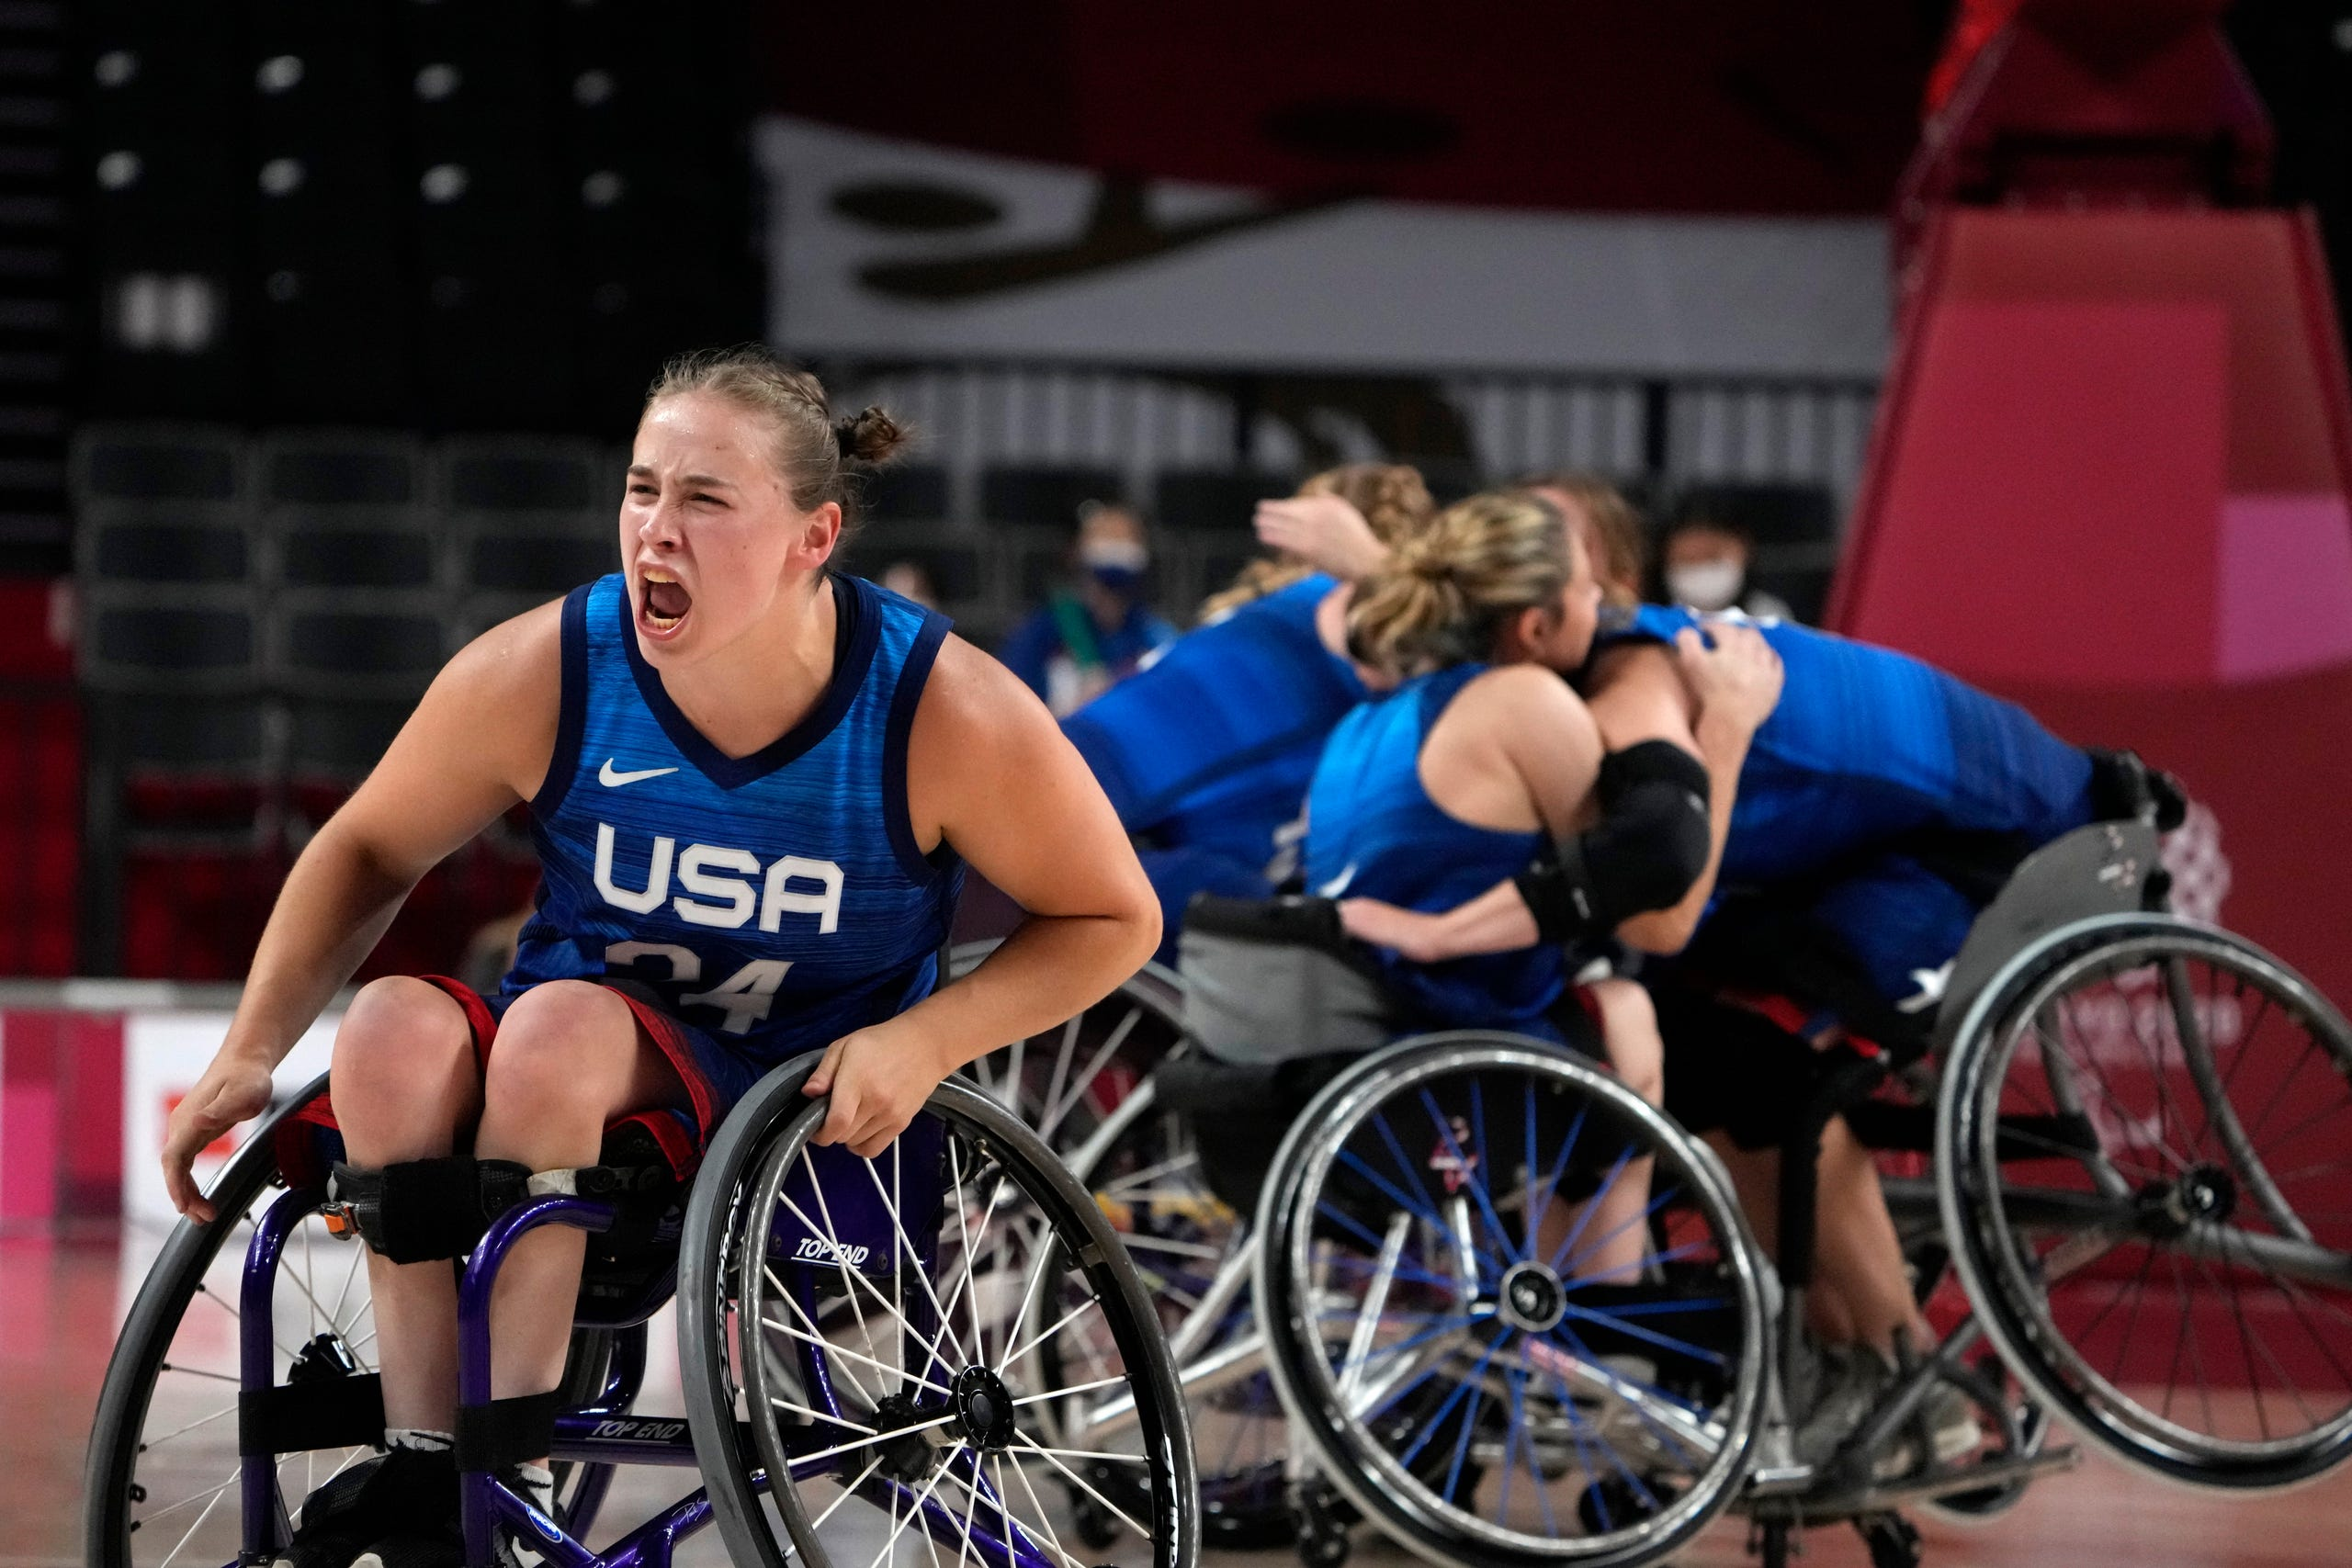 August 31, 2021: United States' Lindsey Zurbrugg, left, and her teammates celebrate as the United States defeated Canada in a women's wheelchair basketball quarterfinal game at the Tokyo 2020 Paralympic Games in Tokyo, Japan.